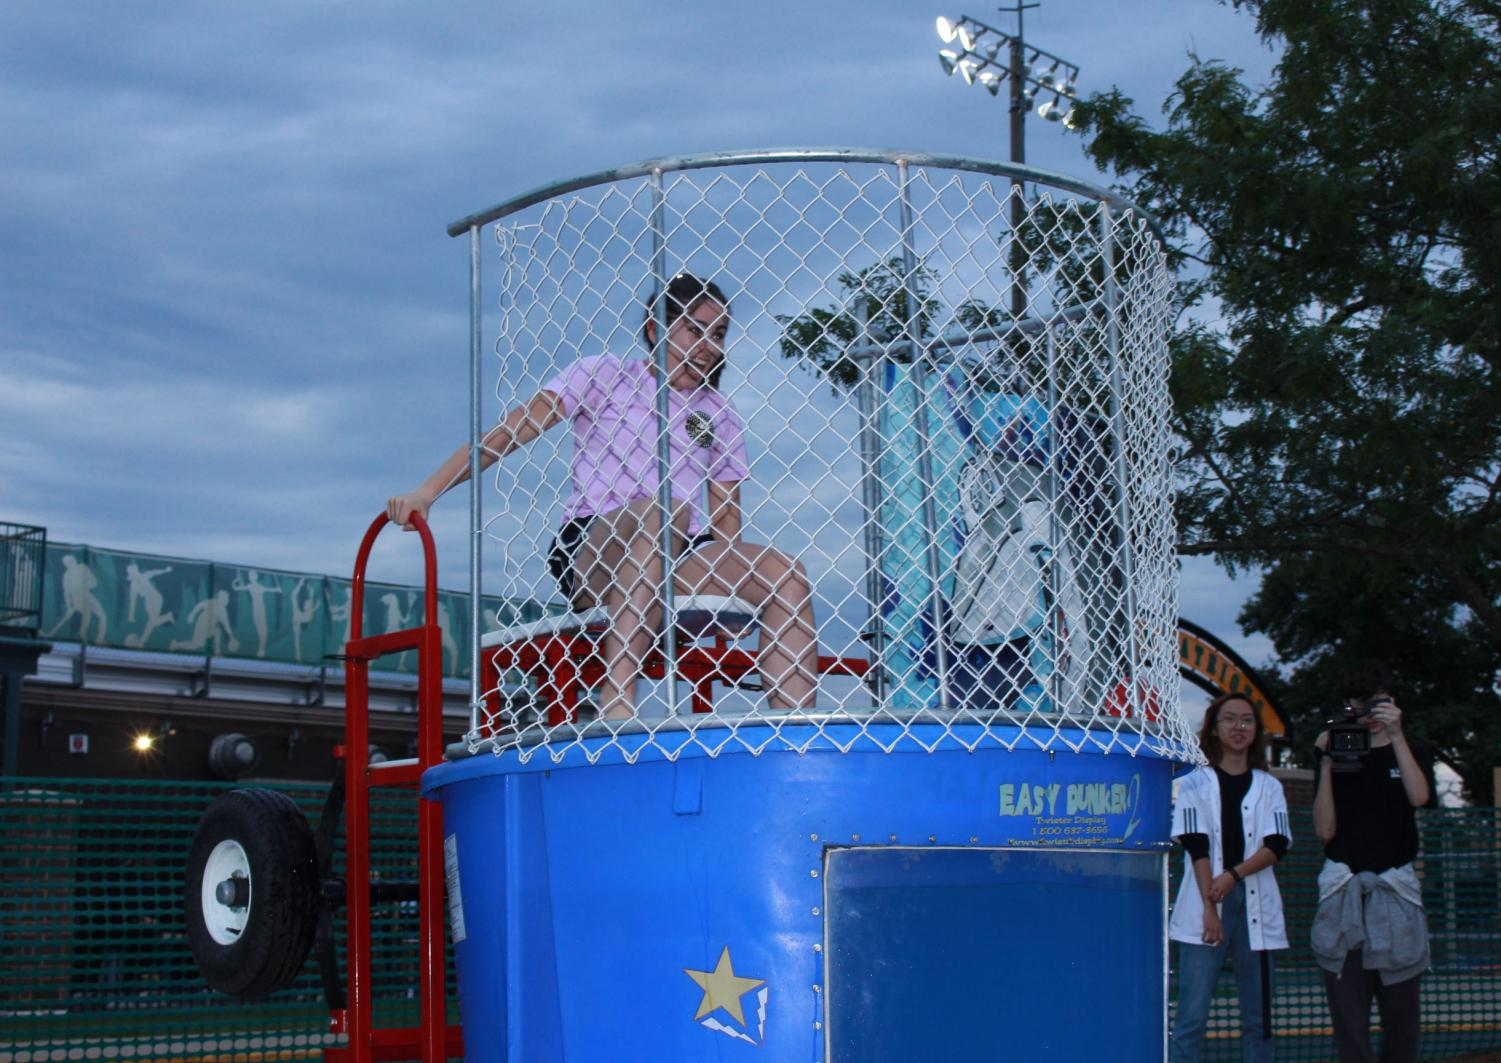 Lauren+Malenfant+%2720+prepares+as+students+attempt+to+dunk+her.+The+dunk+tank+featured+multiple+students+and+teachers+throughout+the+night.+